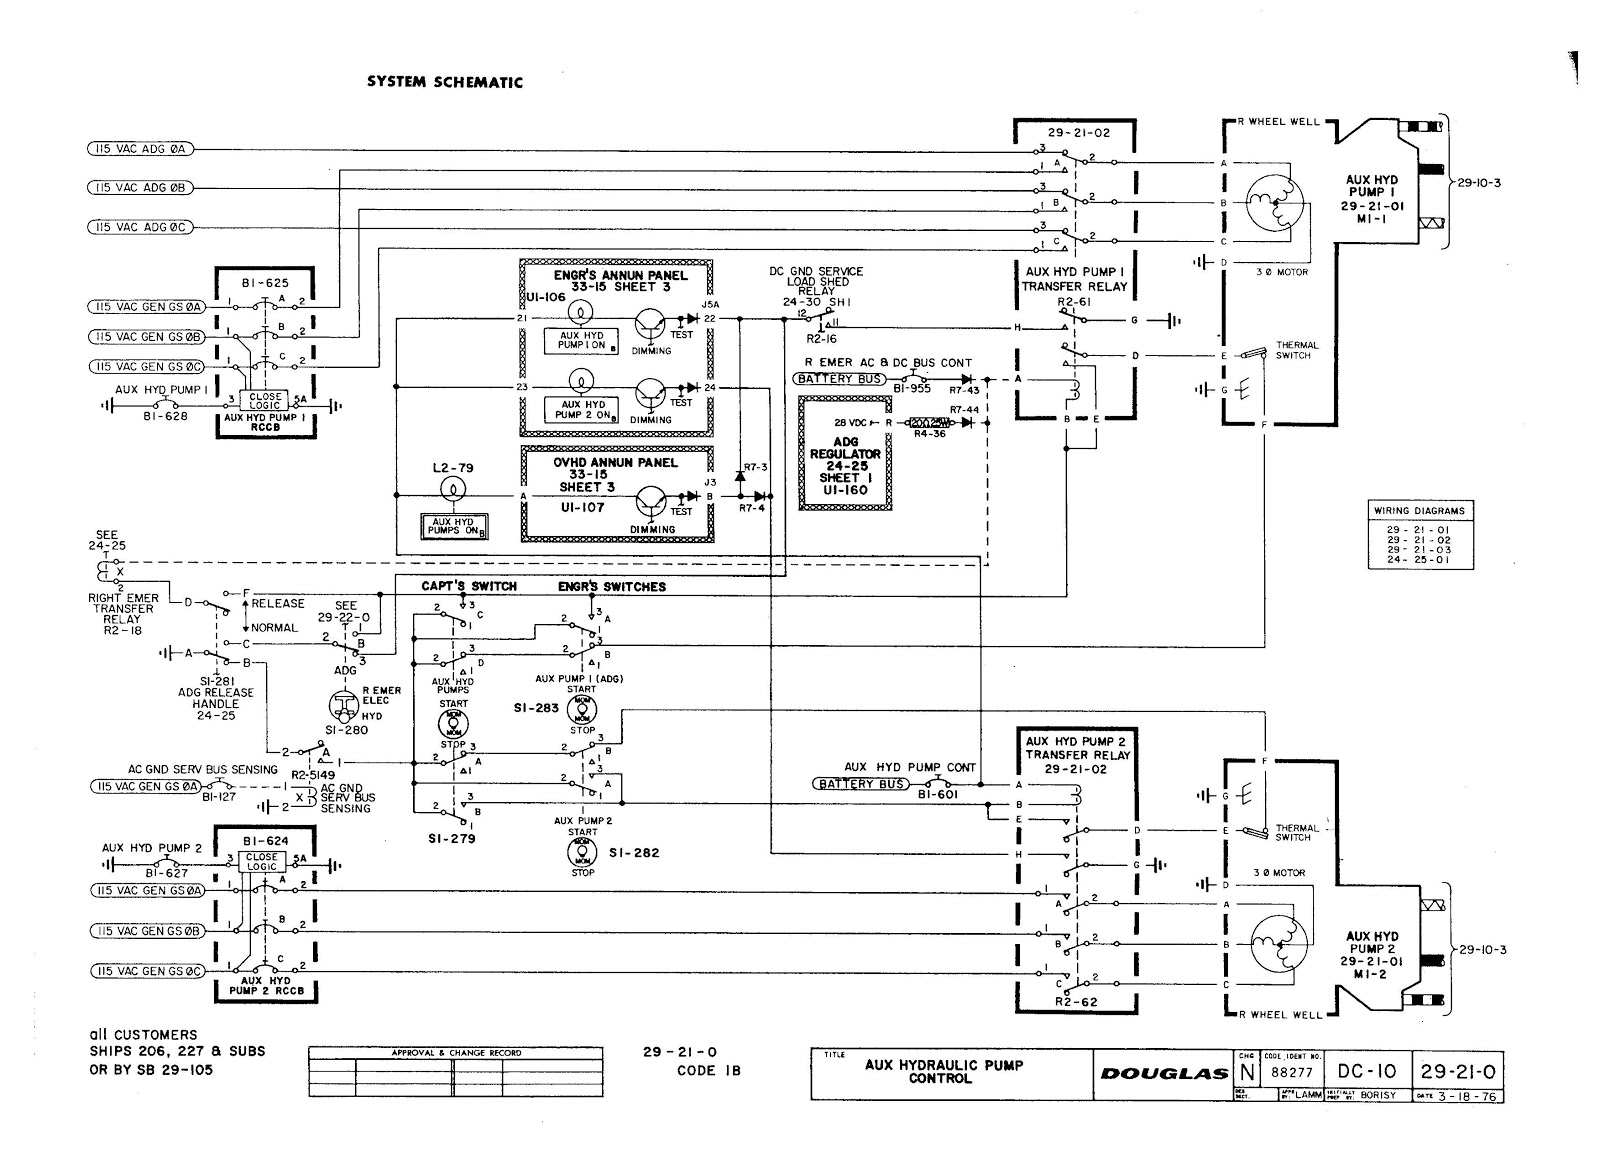 Wiring Schematic Diagram Definition - wiring diagrams